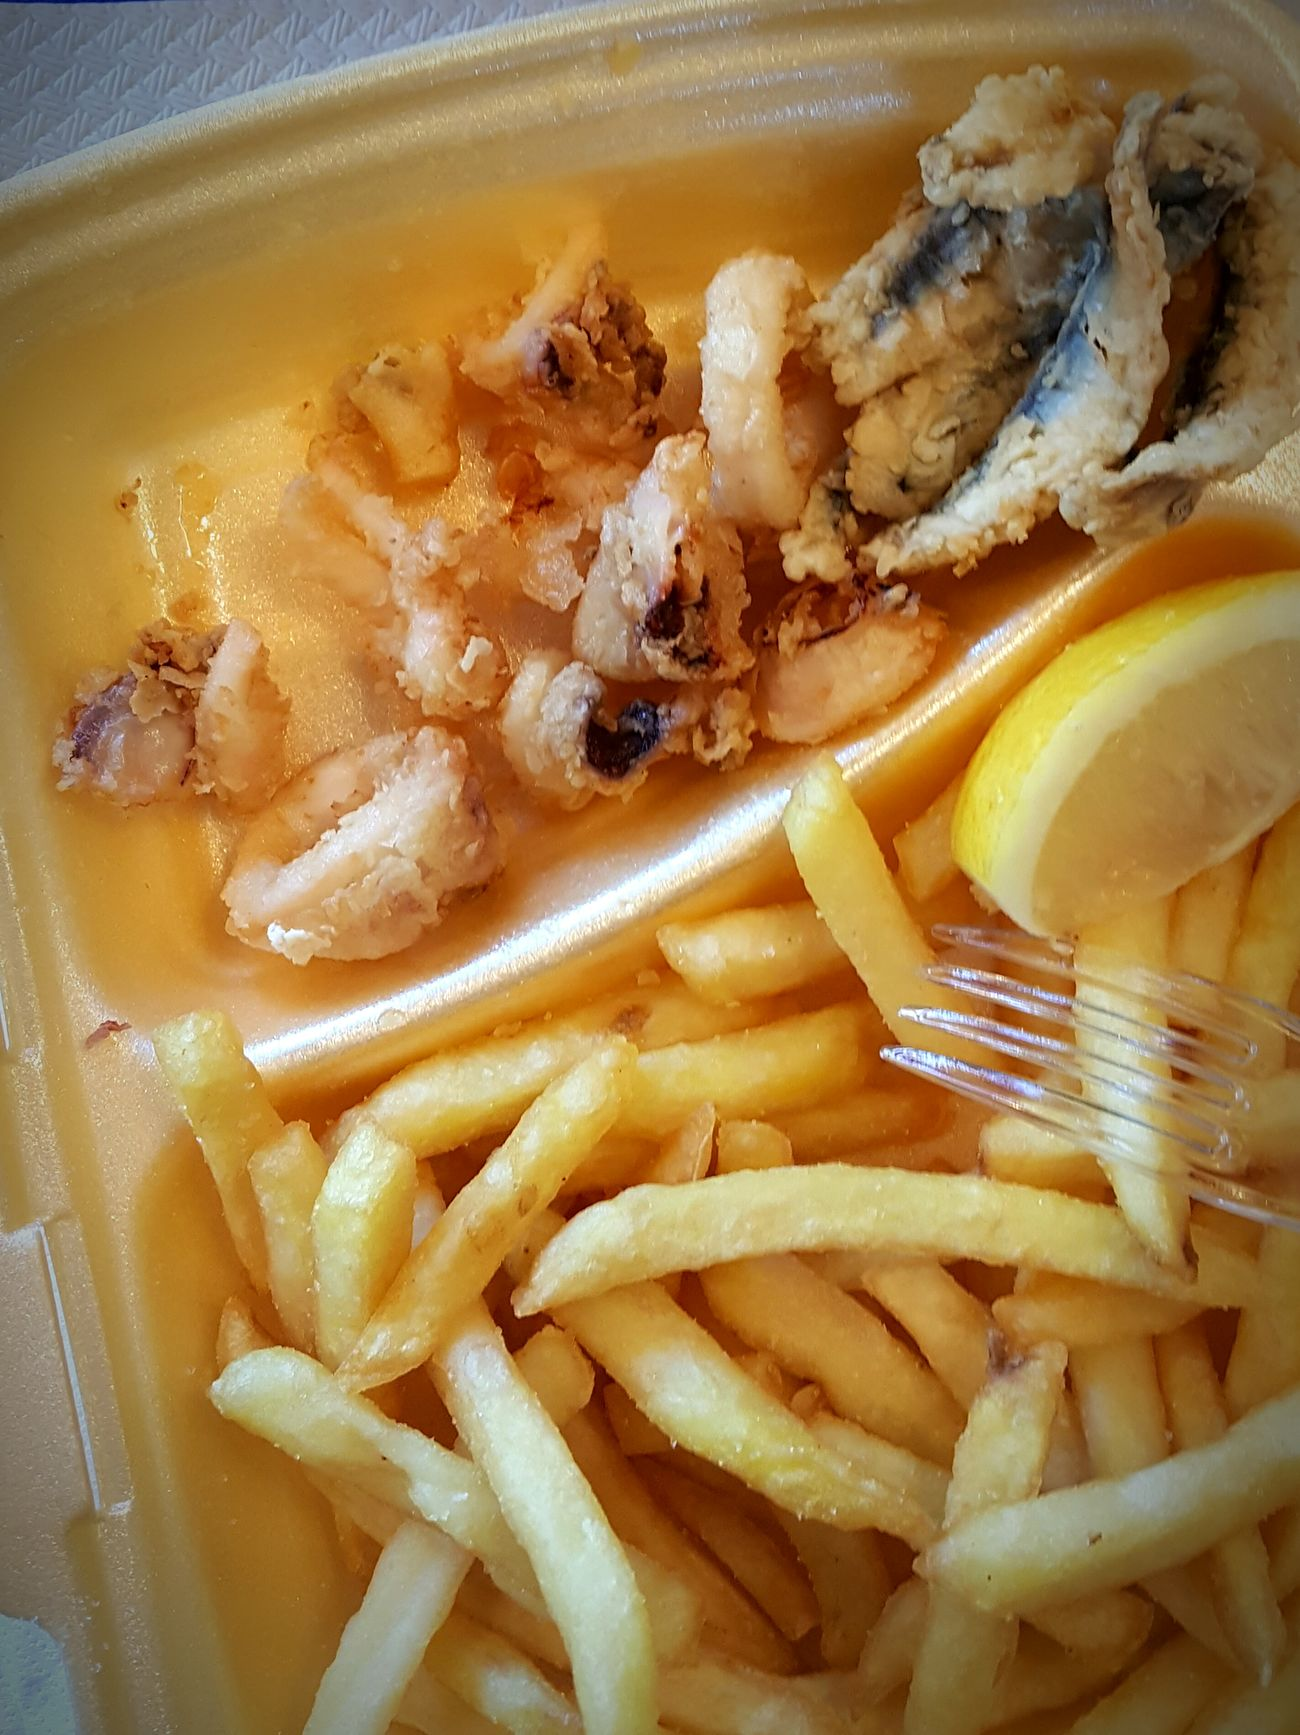 Friday: fried fish. Show Us Your Takeaway!